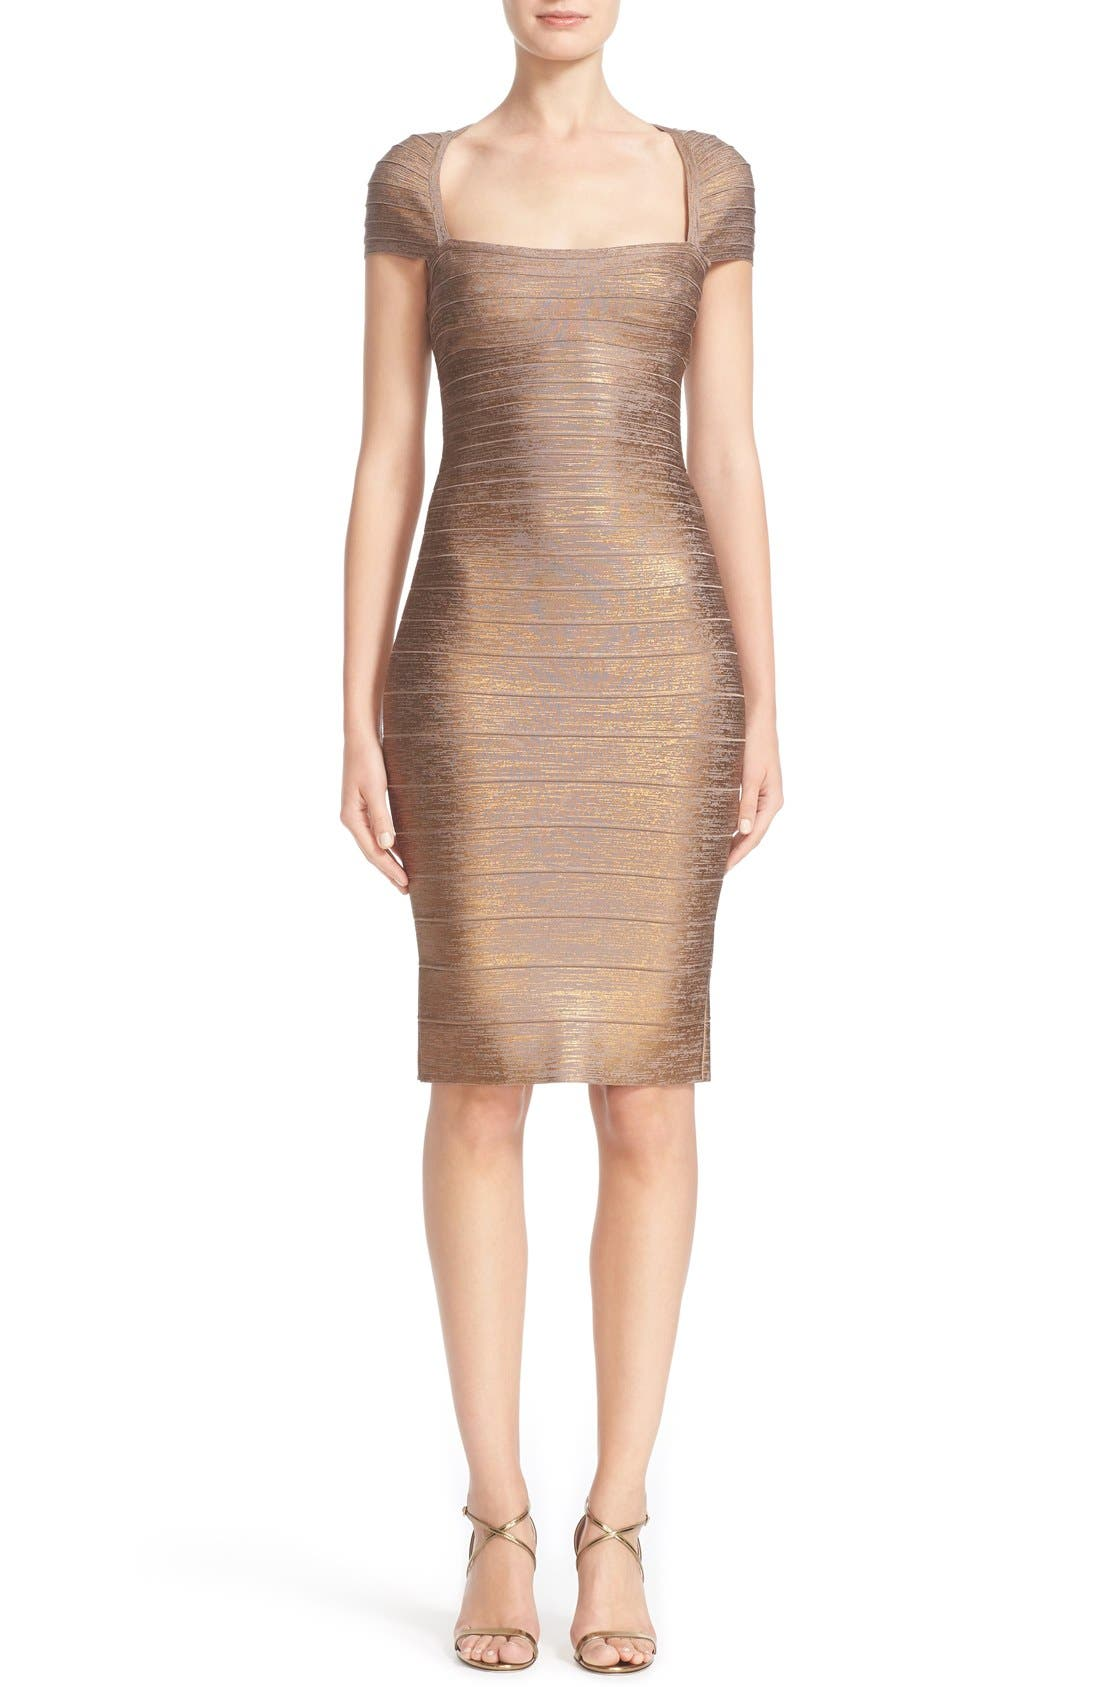 HERVE LEGER Woodgrain Foil Bandage Dress